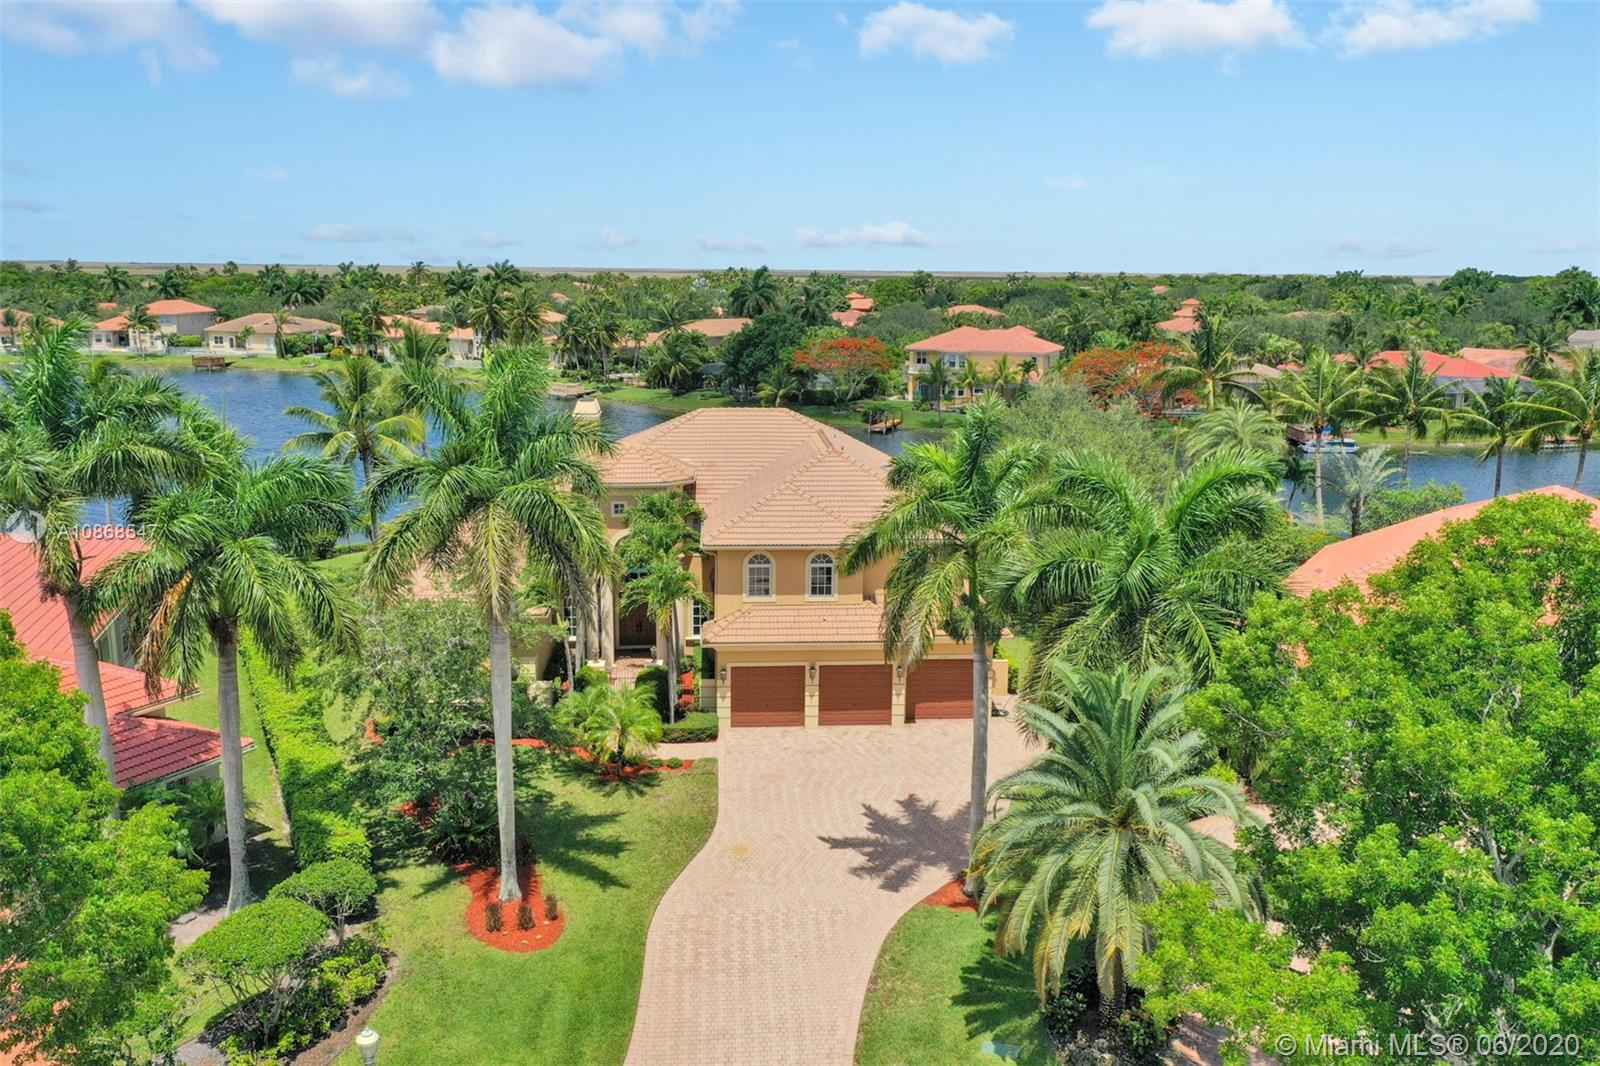 """WOW! ONE OF THE MOST SPECTACULAR HOMES IN ALL OF CORAL SPRINGS LOCATED ON A PRIME TIME .46 ACRE POINT LOT WITH 177' DIRECTLY ON BOATABLE LAKE CORAL SPRINGS INCLUDING DOCK! MAGNIFICENT TOP TO BOTTOM WITH THE FINEST IN CRAFTSMANSHIP! 6 BR + LOFT + OFFICE + 4 CAR GARAGE (6TH BR CURRENTLY OPEN TO LOFT & 4TH GARAGE IS TANDEM WITH A/C AND SIDE ENTRY). IMPACT WINDOWS & DOORS! 24"""" SATURNIA FLOORS! GOURMET KITCHEN! 750 SQ. FT. LOGGIA WITH SUMMER KITCHEN AND GAS COOKING! PLETHORA OF UPGRADES LISTED ON FACT SHEET! MUST SEE!"""